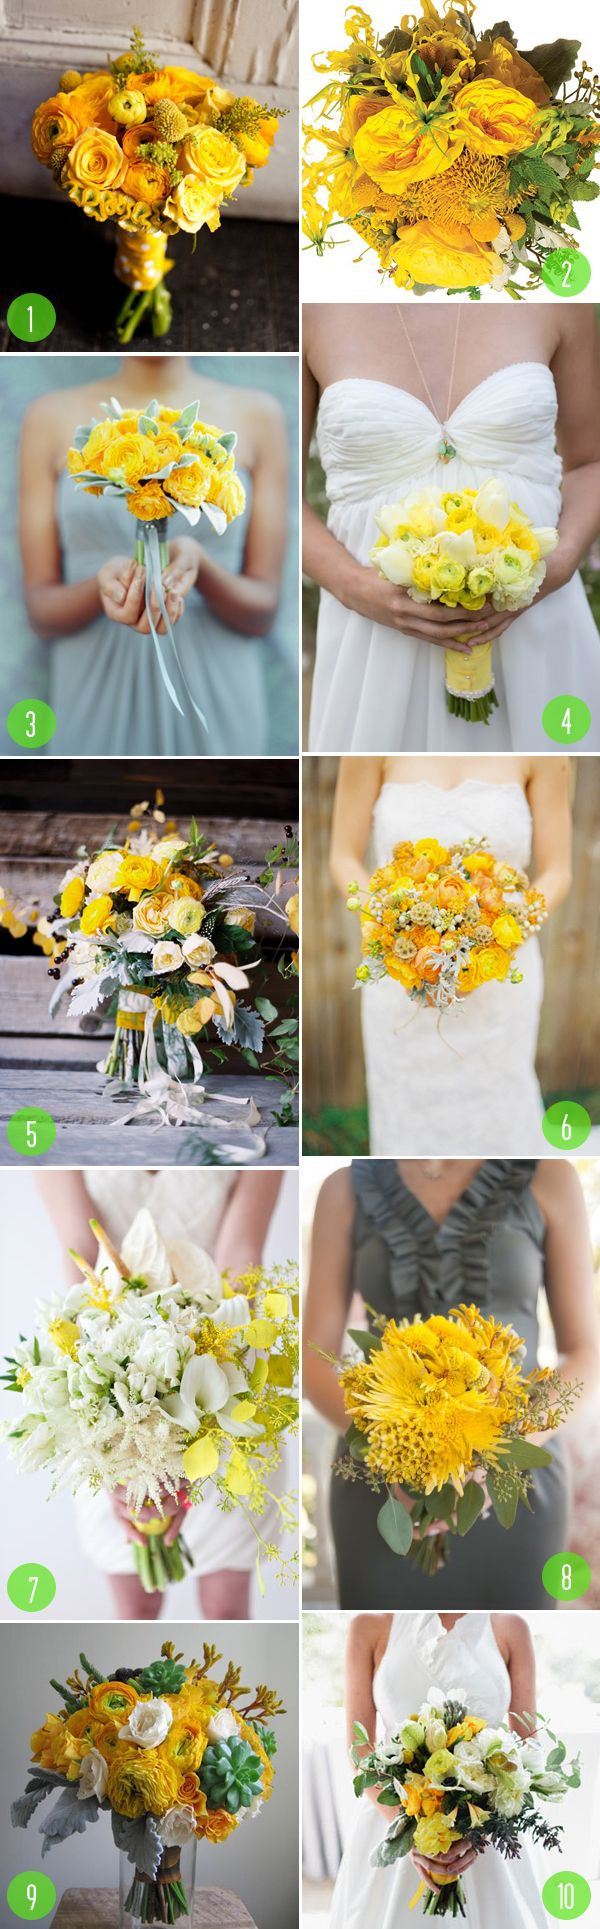 similiar to # 7  white callas (10) , yellow spray roses (4), spray euc seeded yellow accent only , polar star white roses.(6). white carnations (8) wrap raffia or jute.